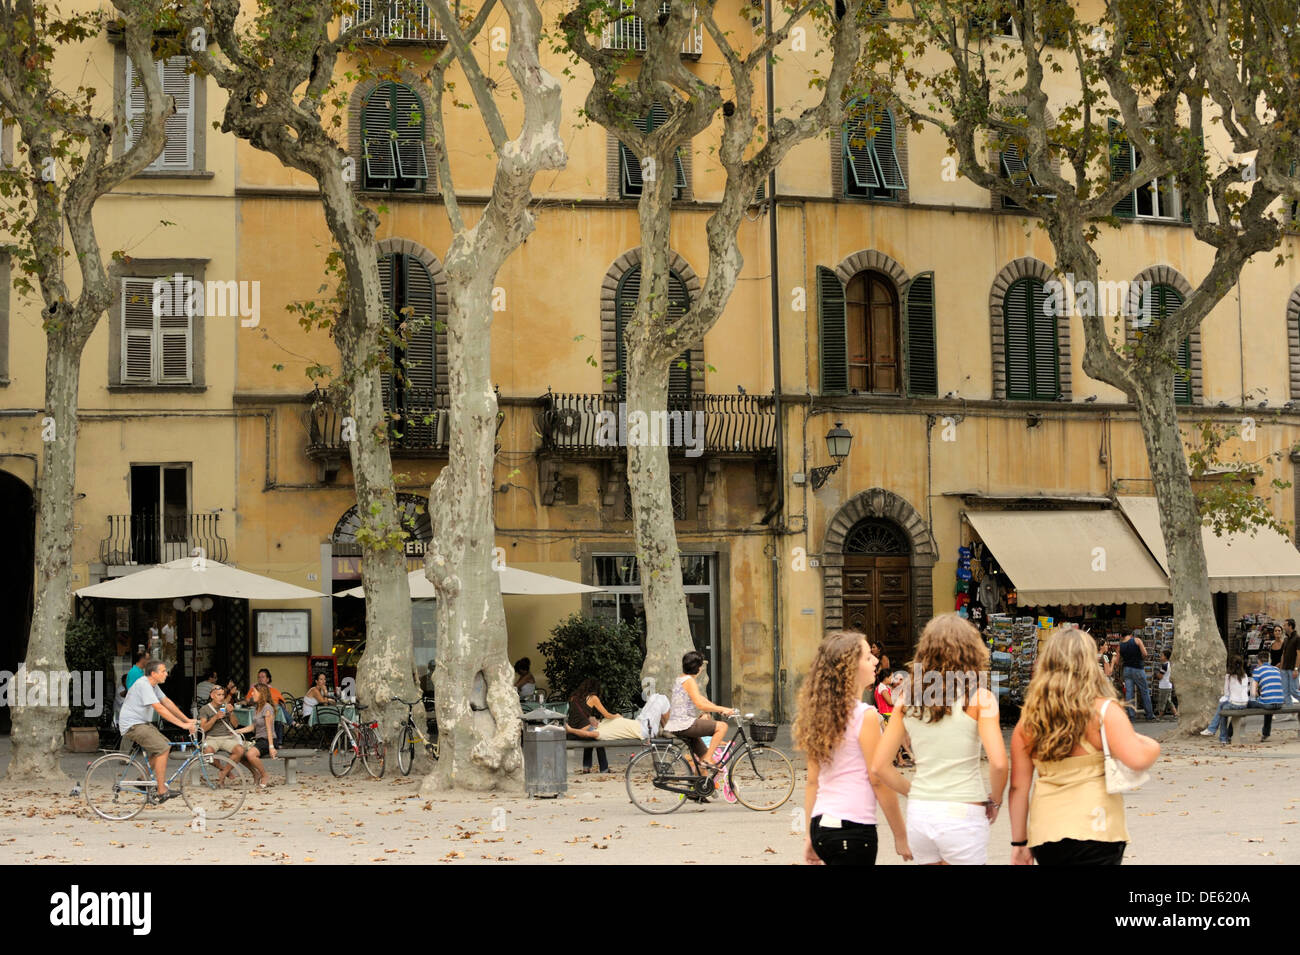 Lucca, Tuscany, Italy. Cafes bars restaurants apartments houses ...